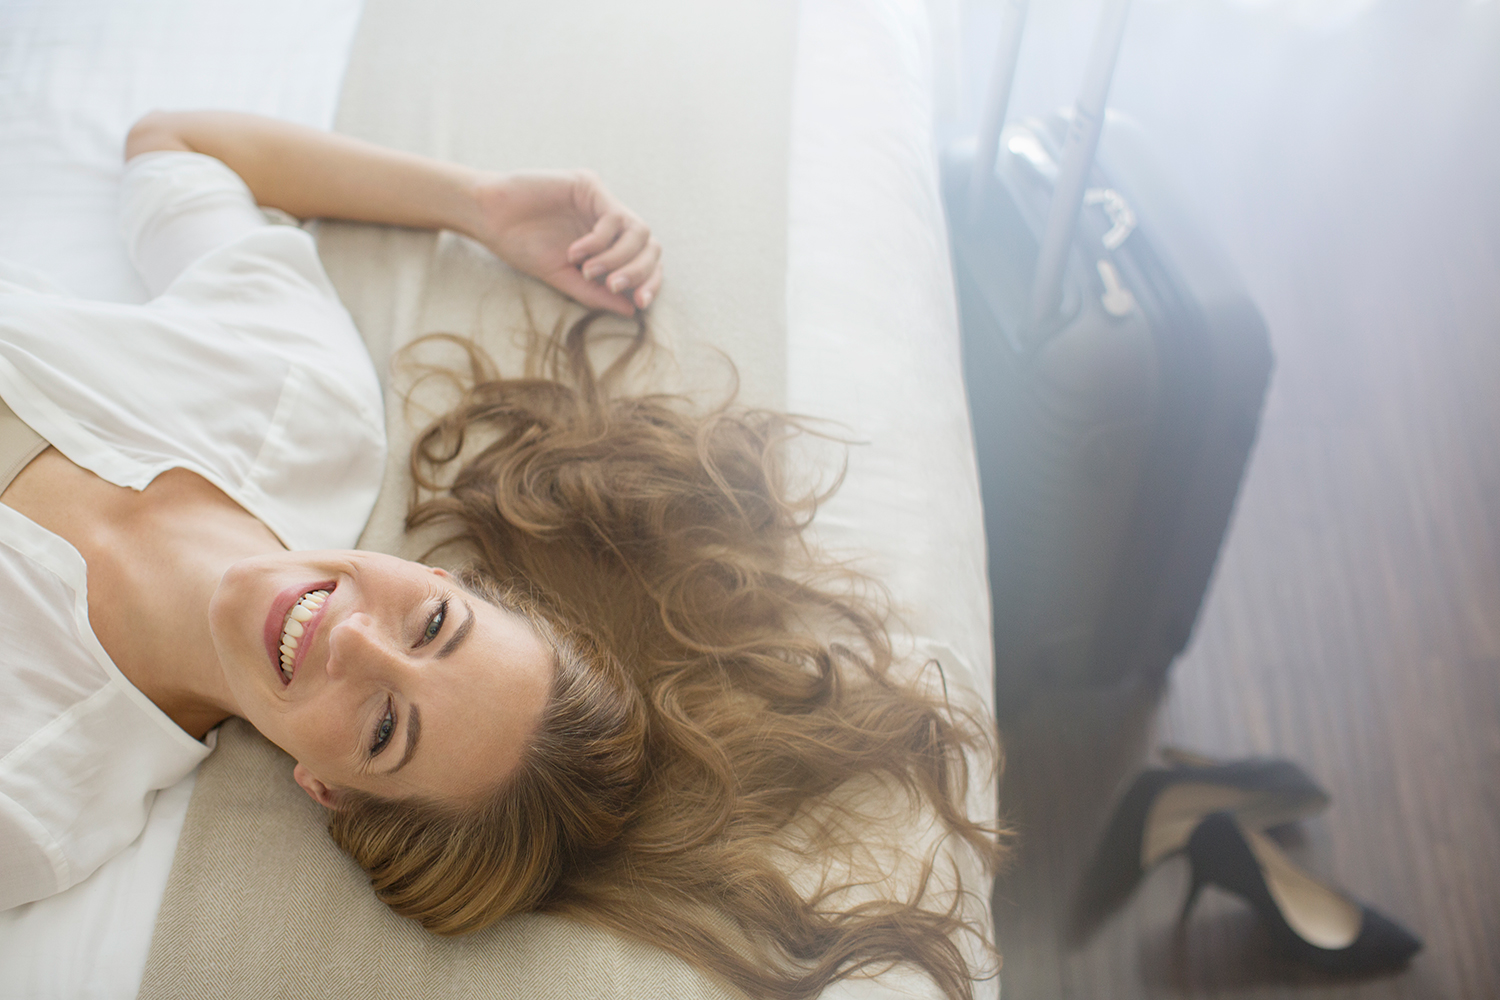 Woman Lounging on Bed Smiling